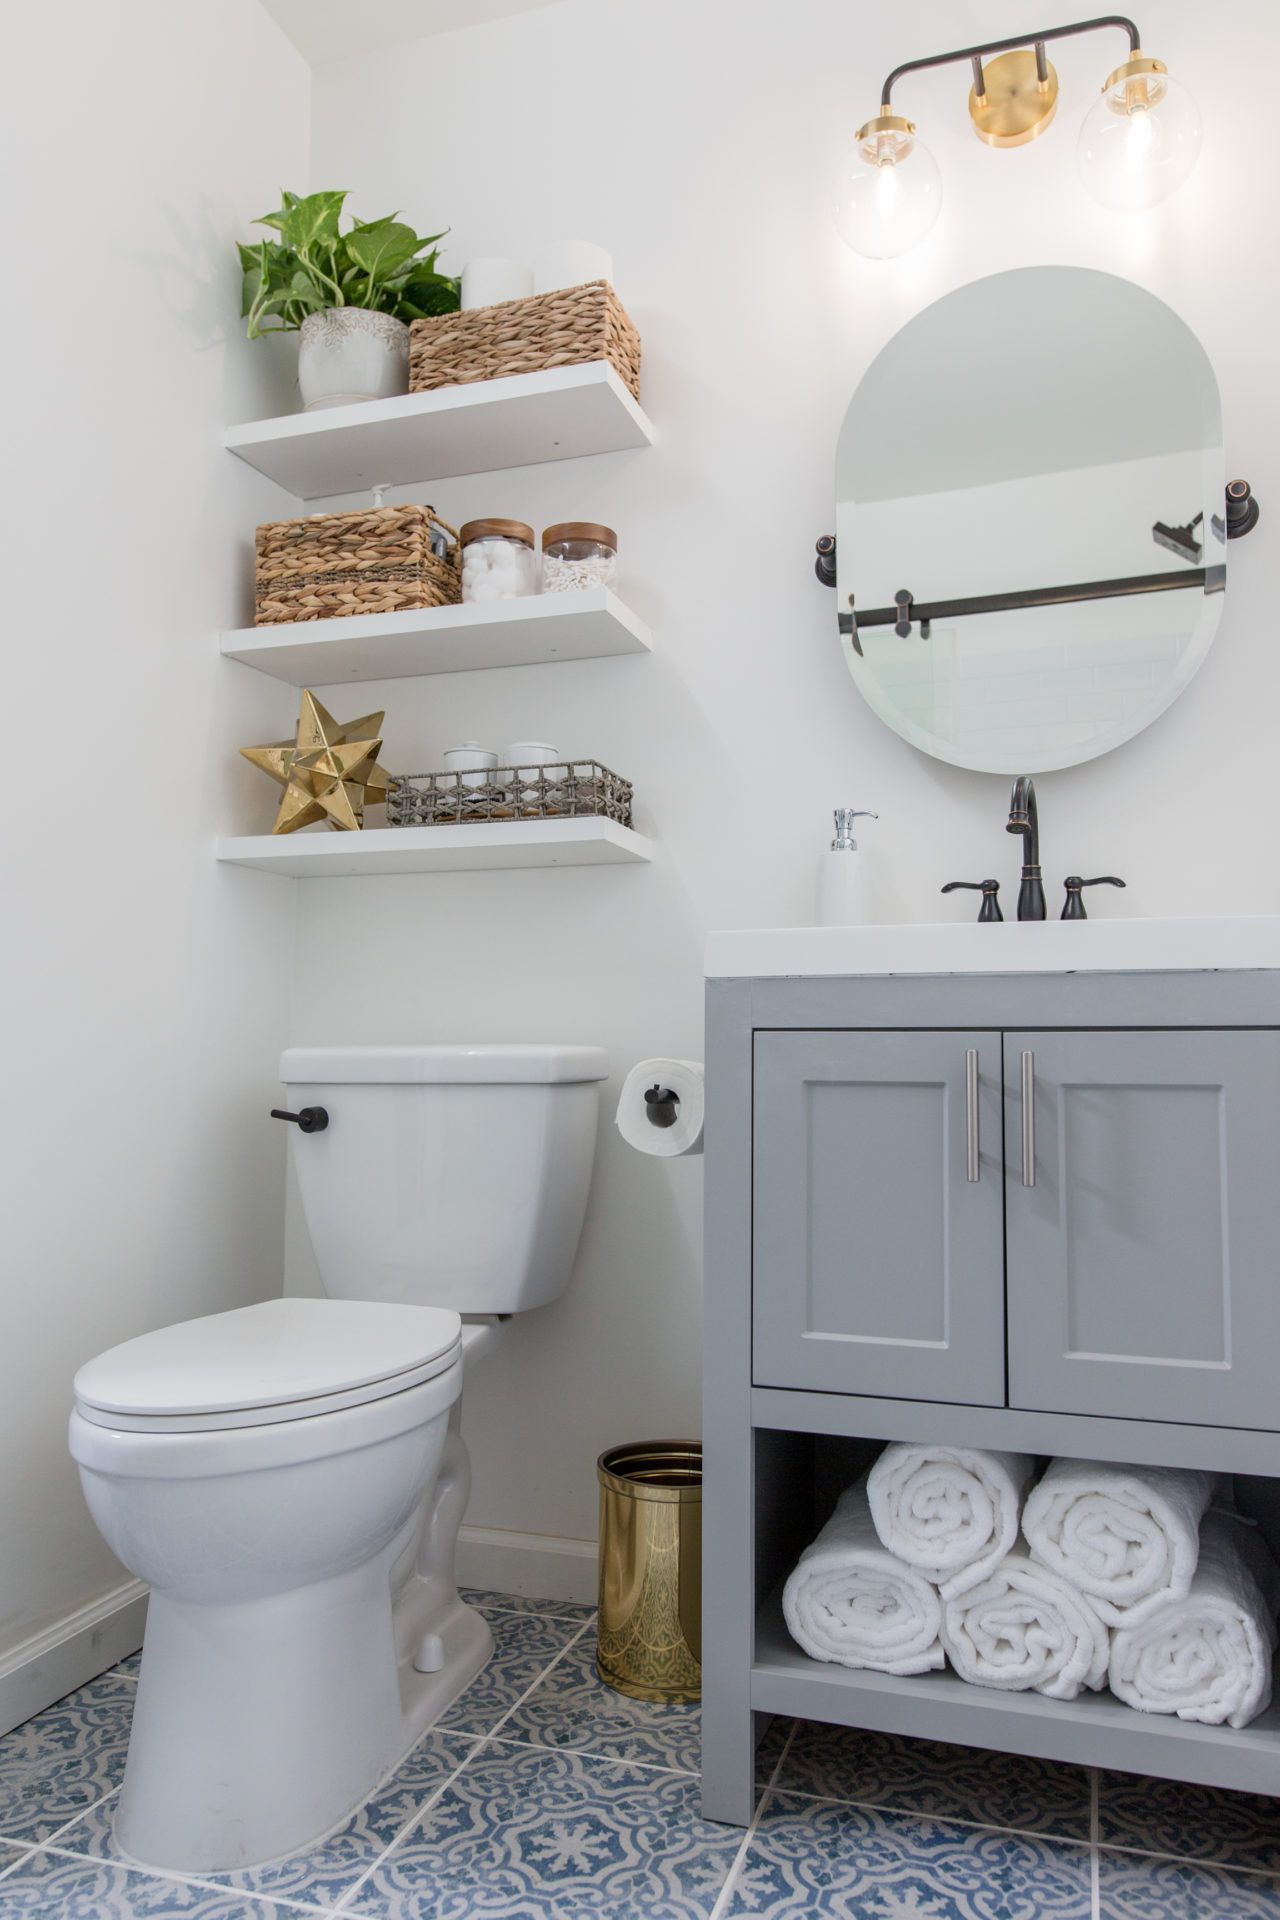 Most Bathrooms Are Short On Storage So Installing Floating